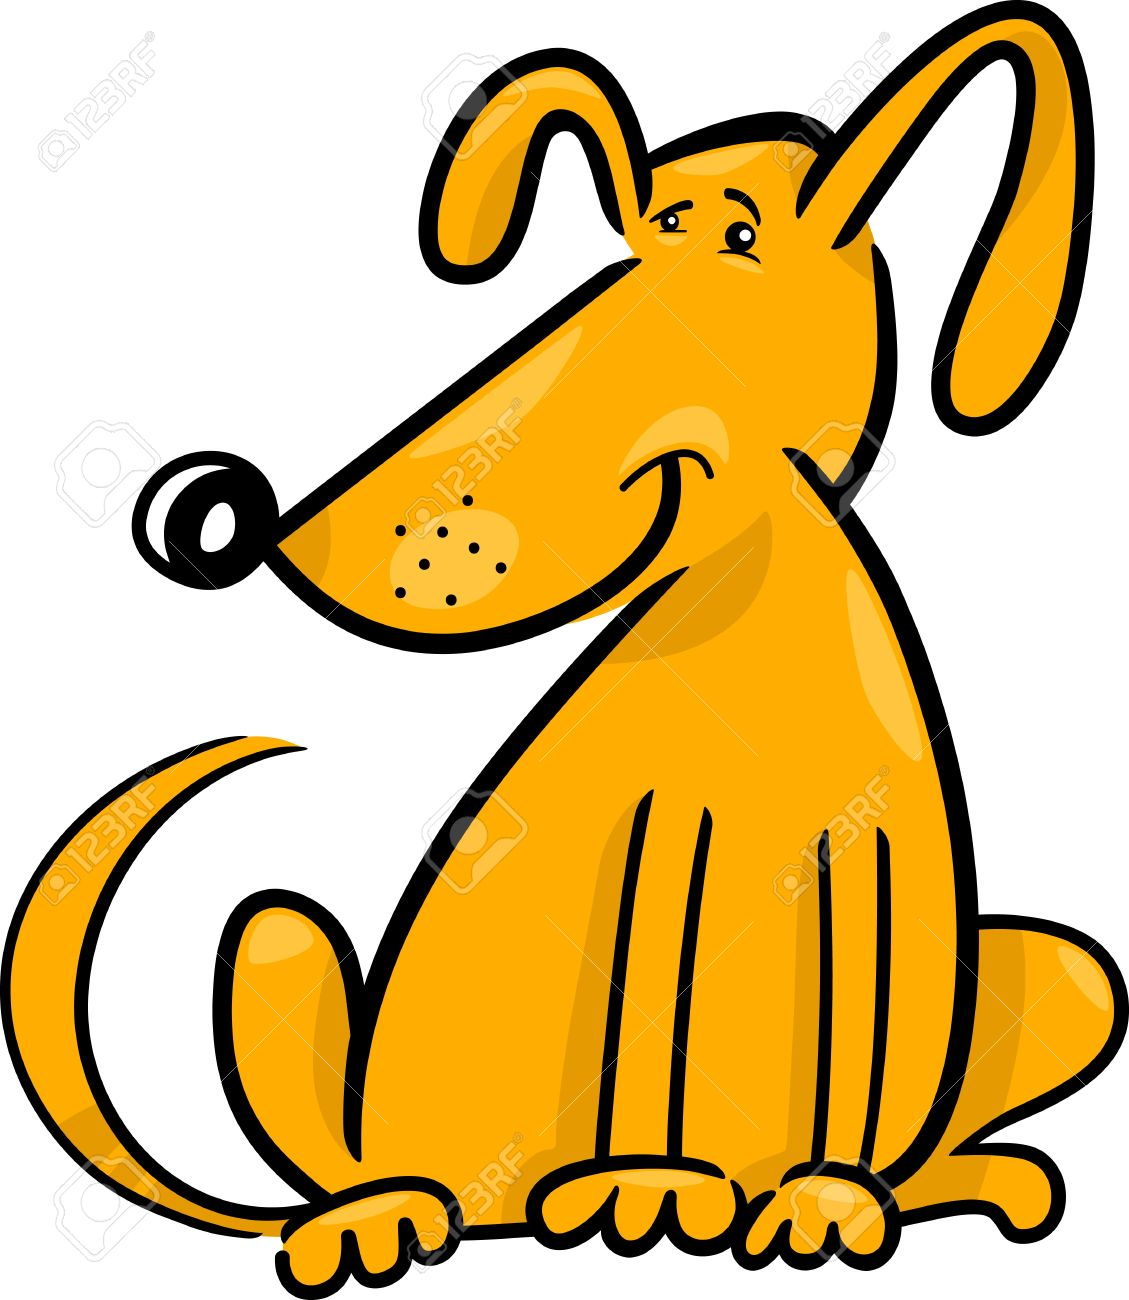 1129x1300 Cartoon Doodle Illustration Of Cute Yellow Dog Or Puppy Royalty